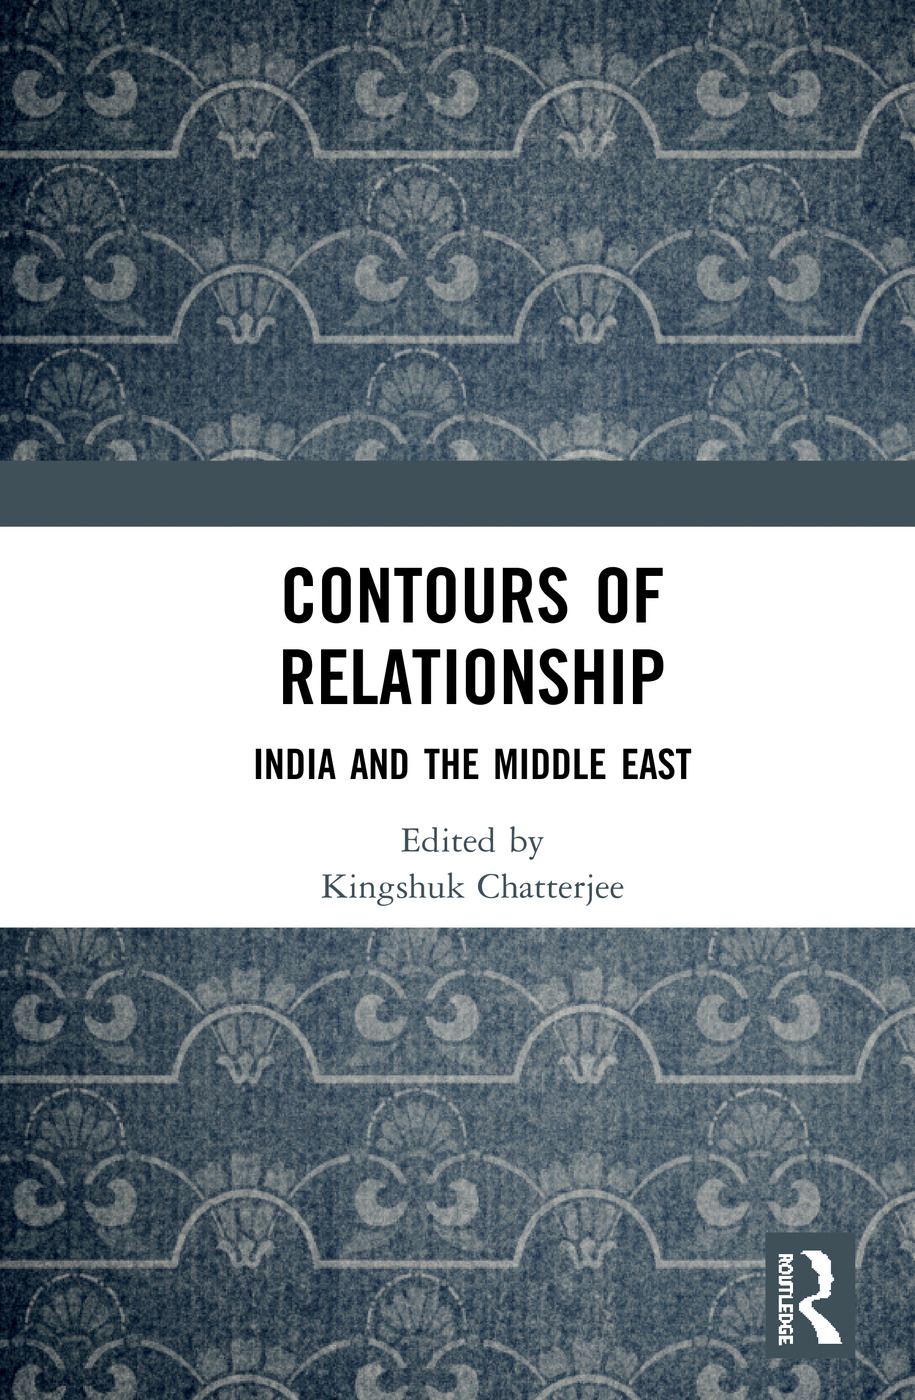 Contours of Relationship: India and the Middle East book cover